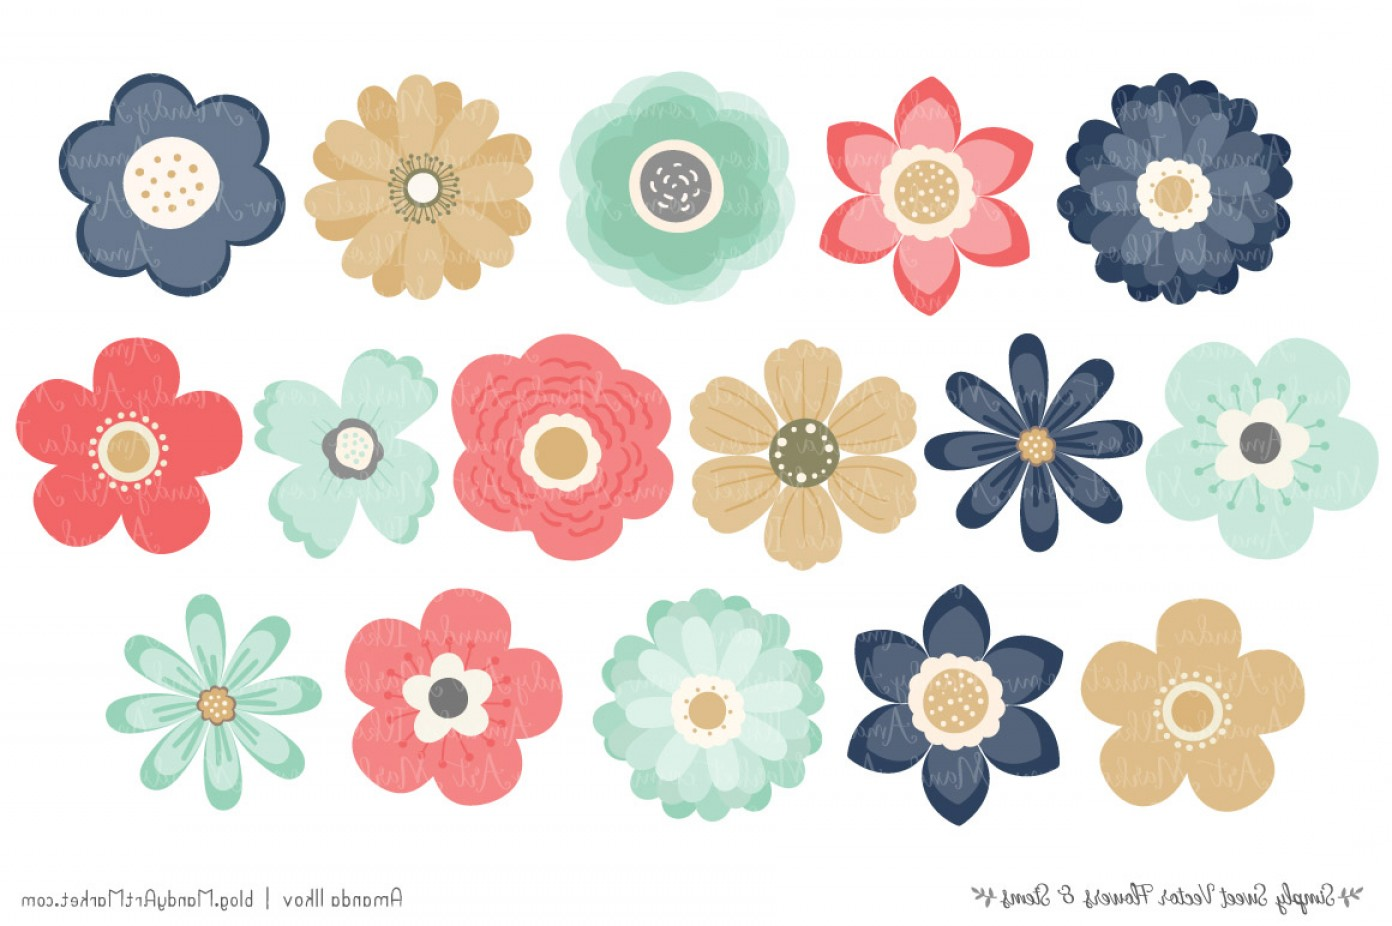 Modern clipart flowers graphic transparent stock Simply Sweet Vector Flowers And Stems Clipart In Modern Chic ... graphic transparent stock